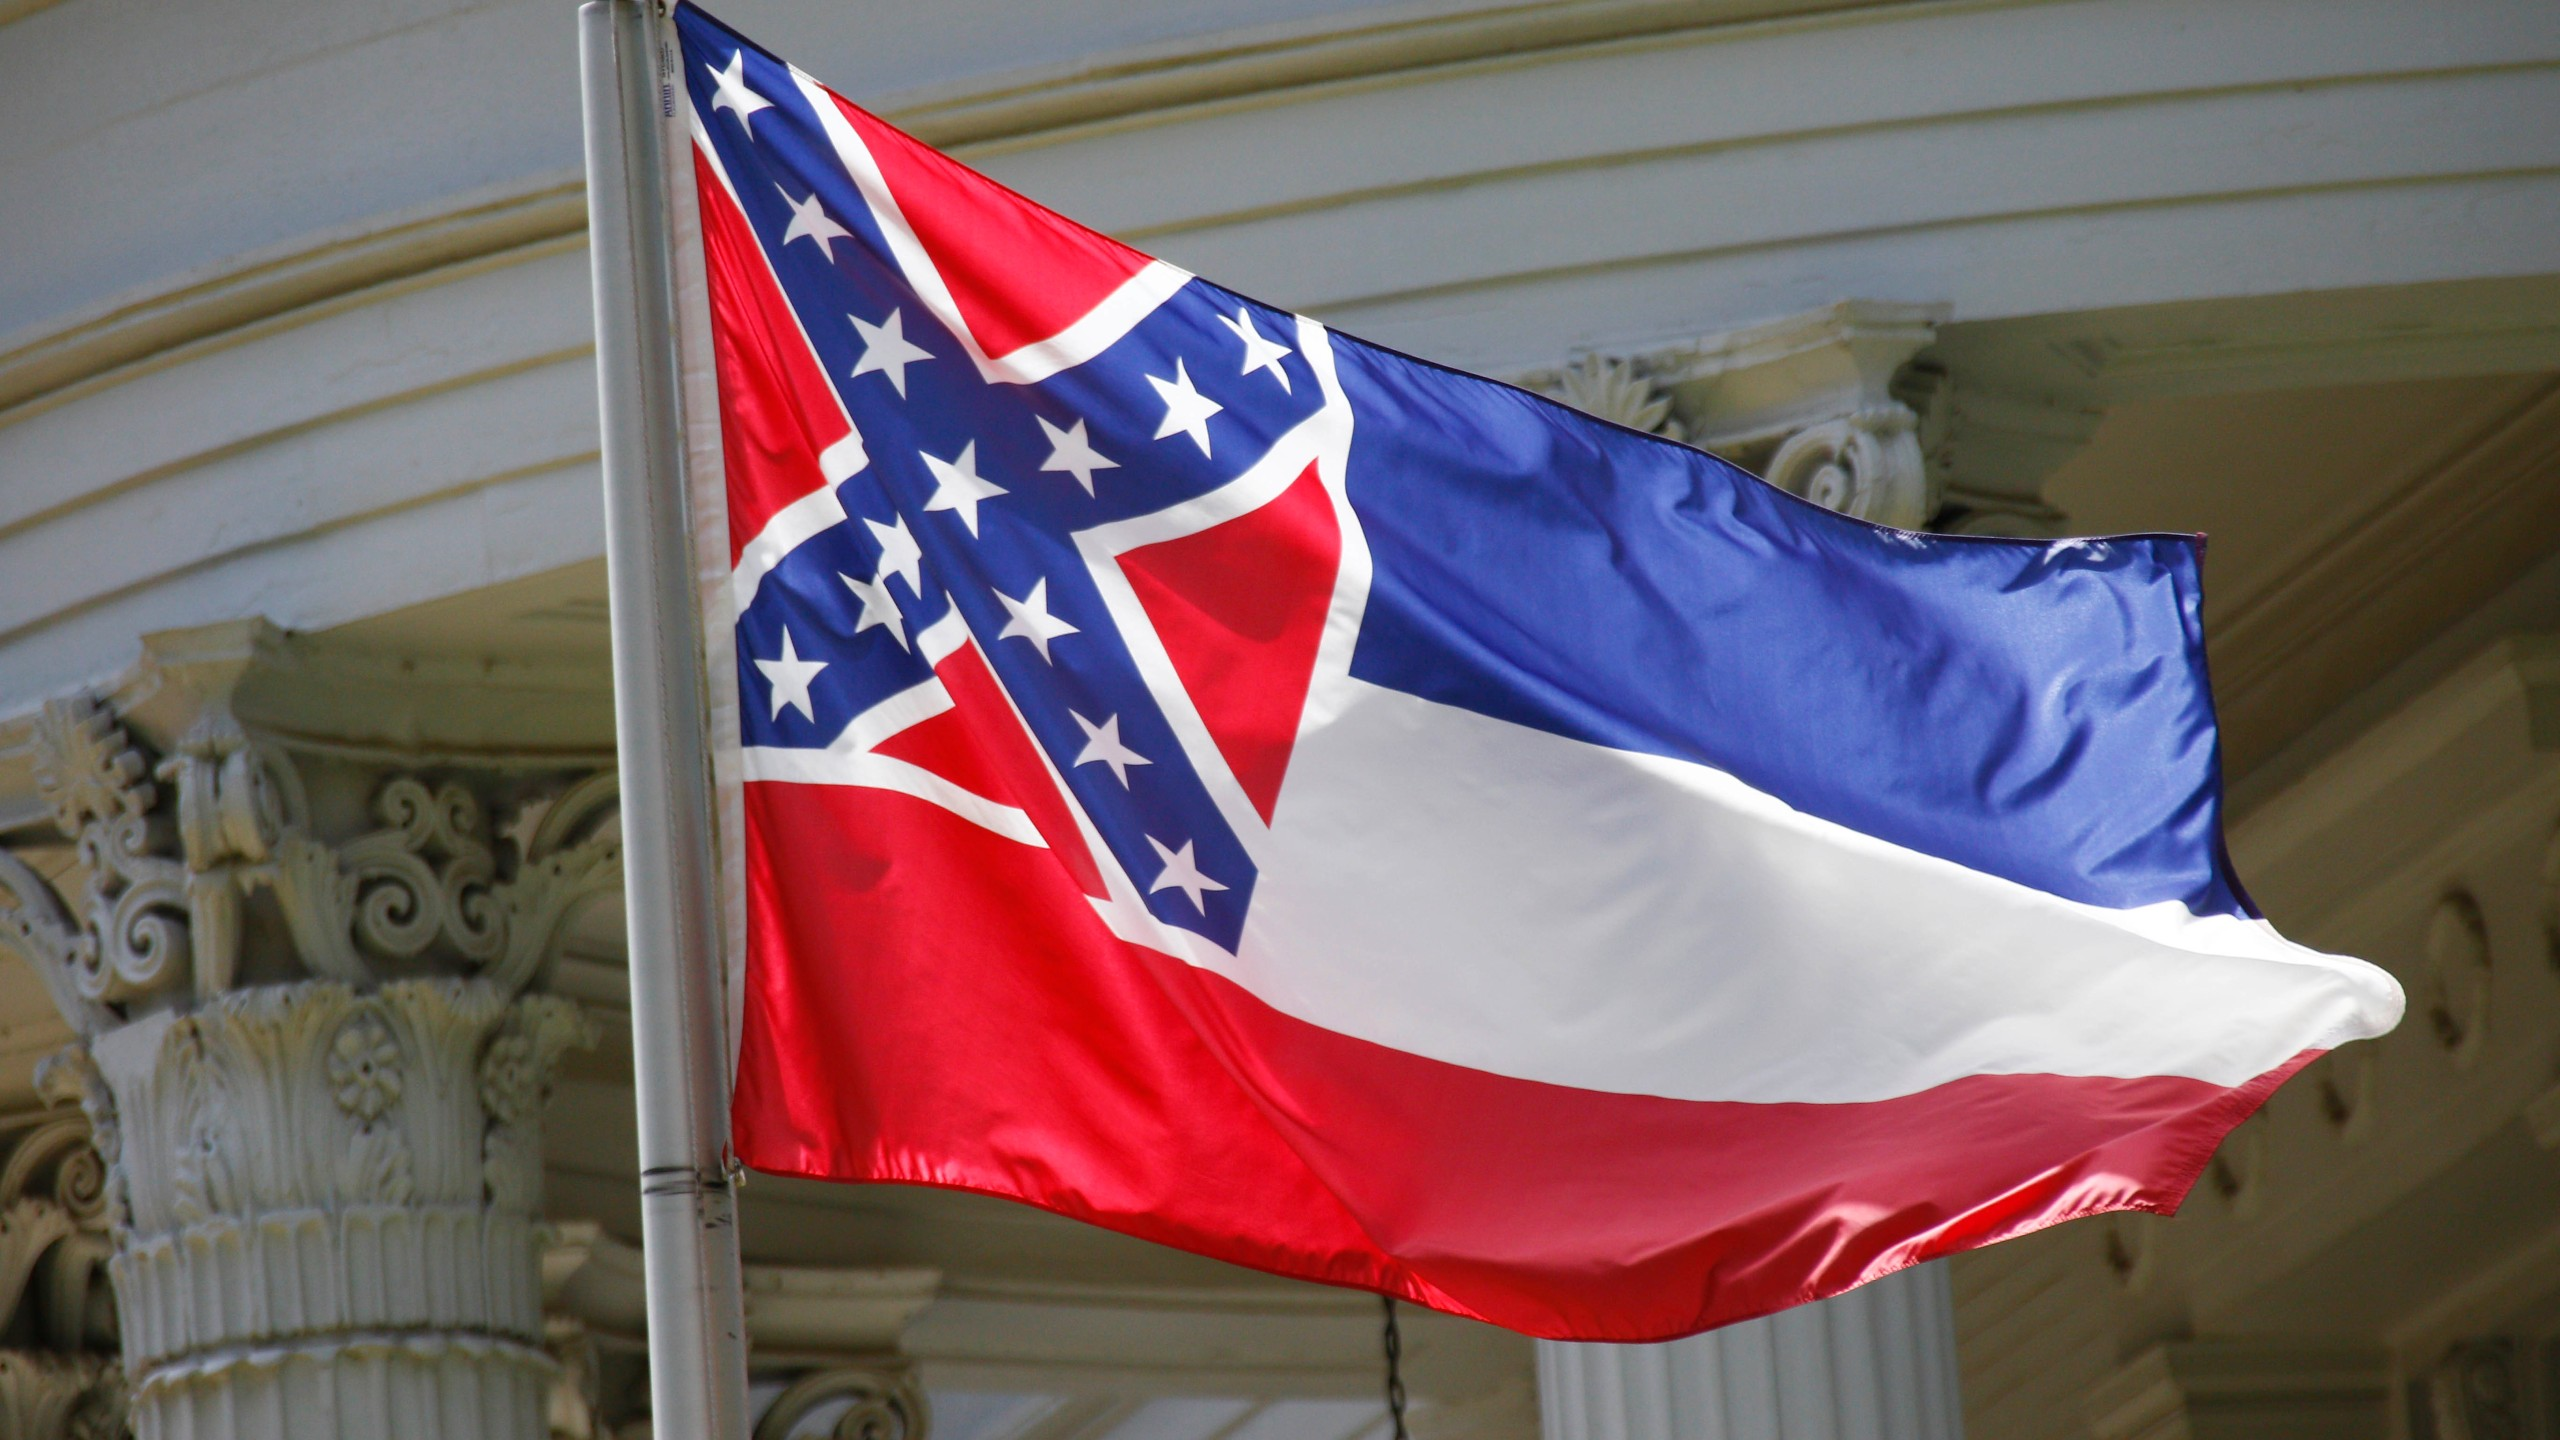 Confederate_Flag_Mississippi_50929-159532.jpg71575034